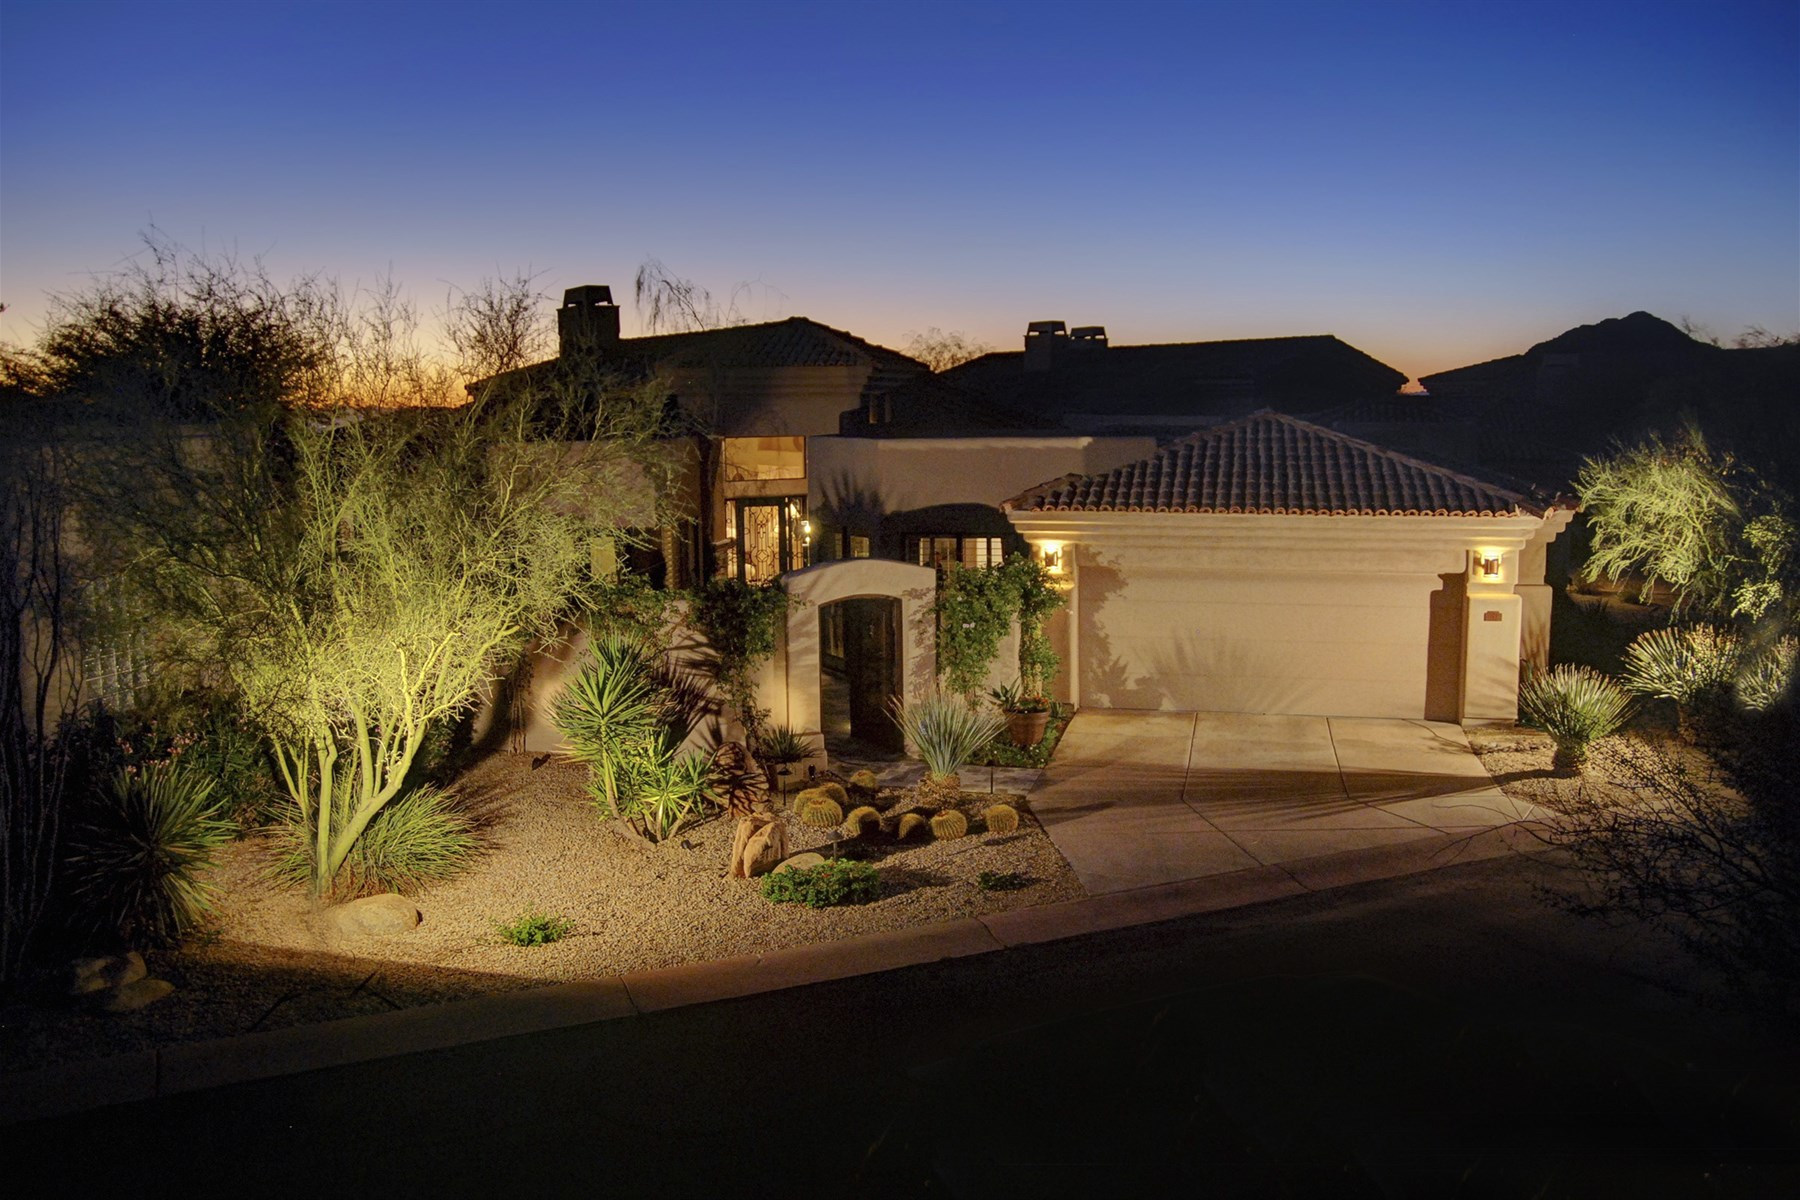 Einfamilienhaus für Verkauf beim Stunning home in one of Troon's most desirable gated communities 24350 N Whispering Ridge Way 31 Scottsdale, Arizona 85255 Vereinigte Staaten